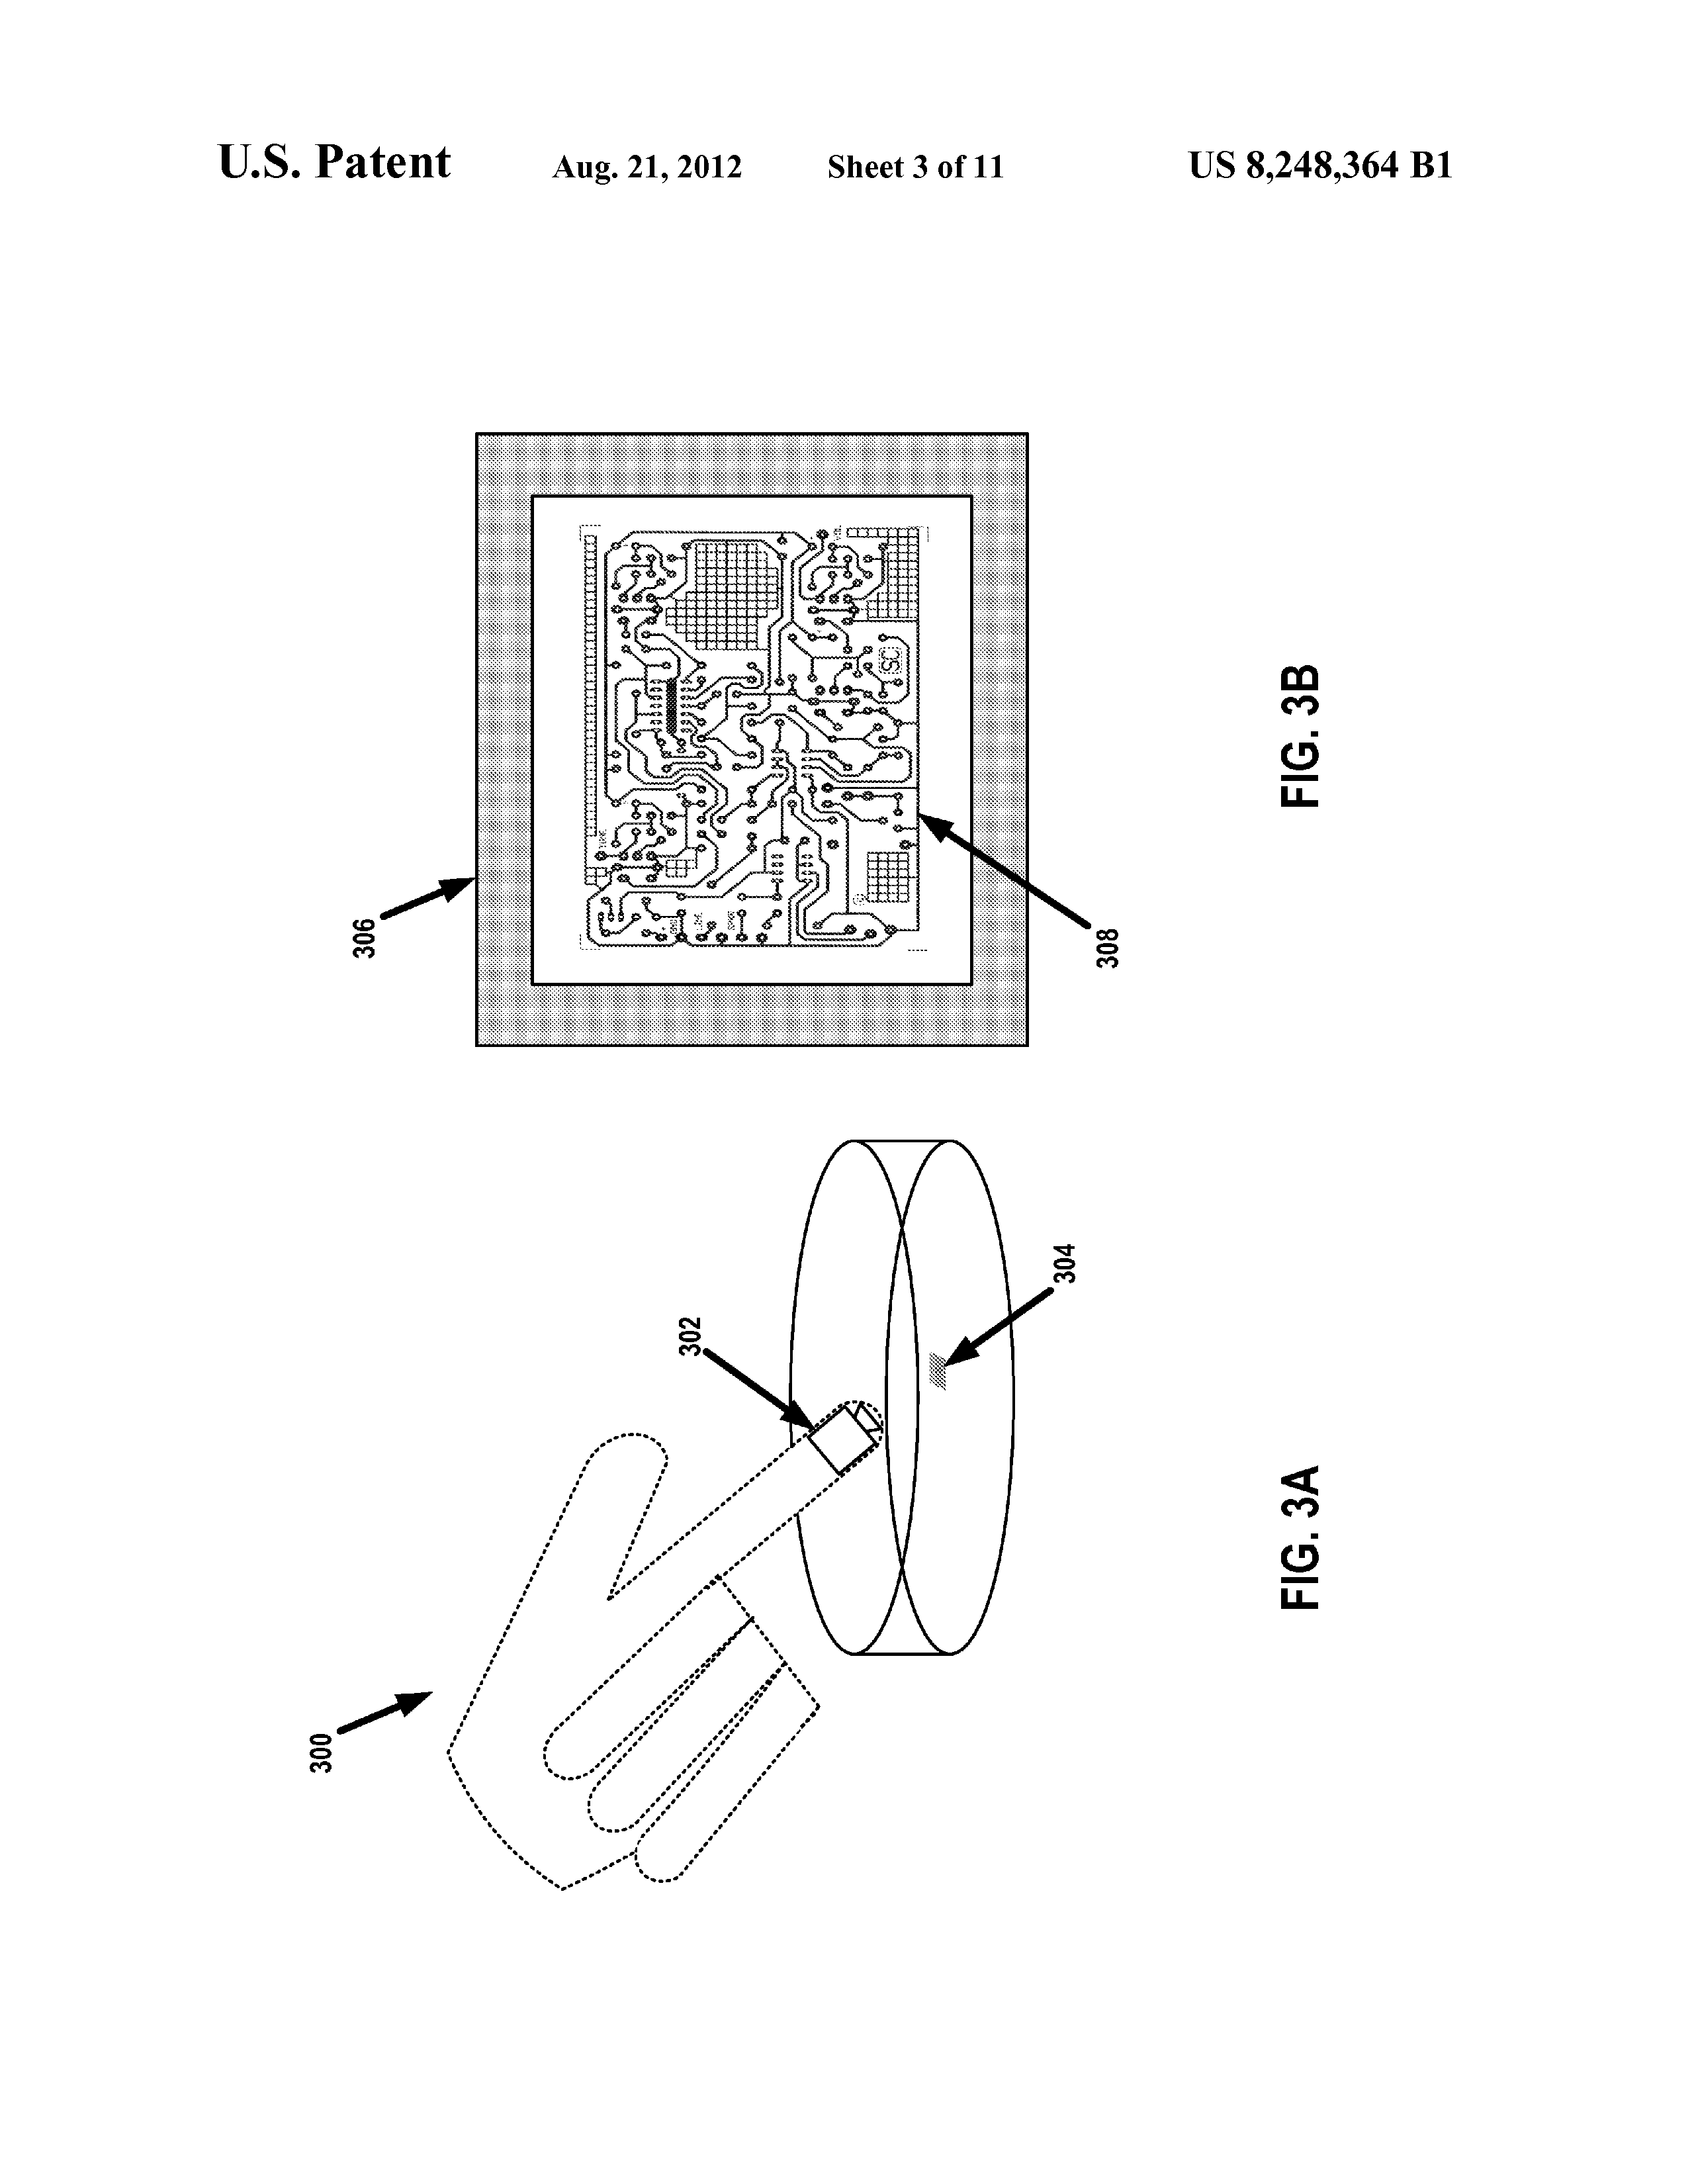 US 8248364 B1 - Seeing With Your Hand - The Lens - Free